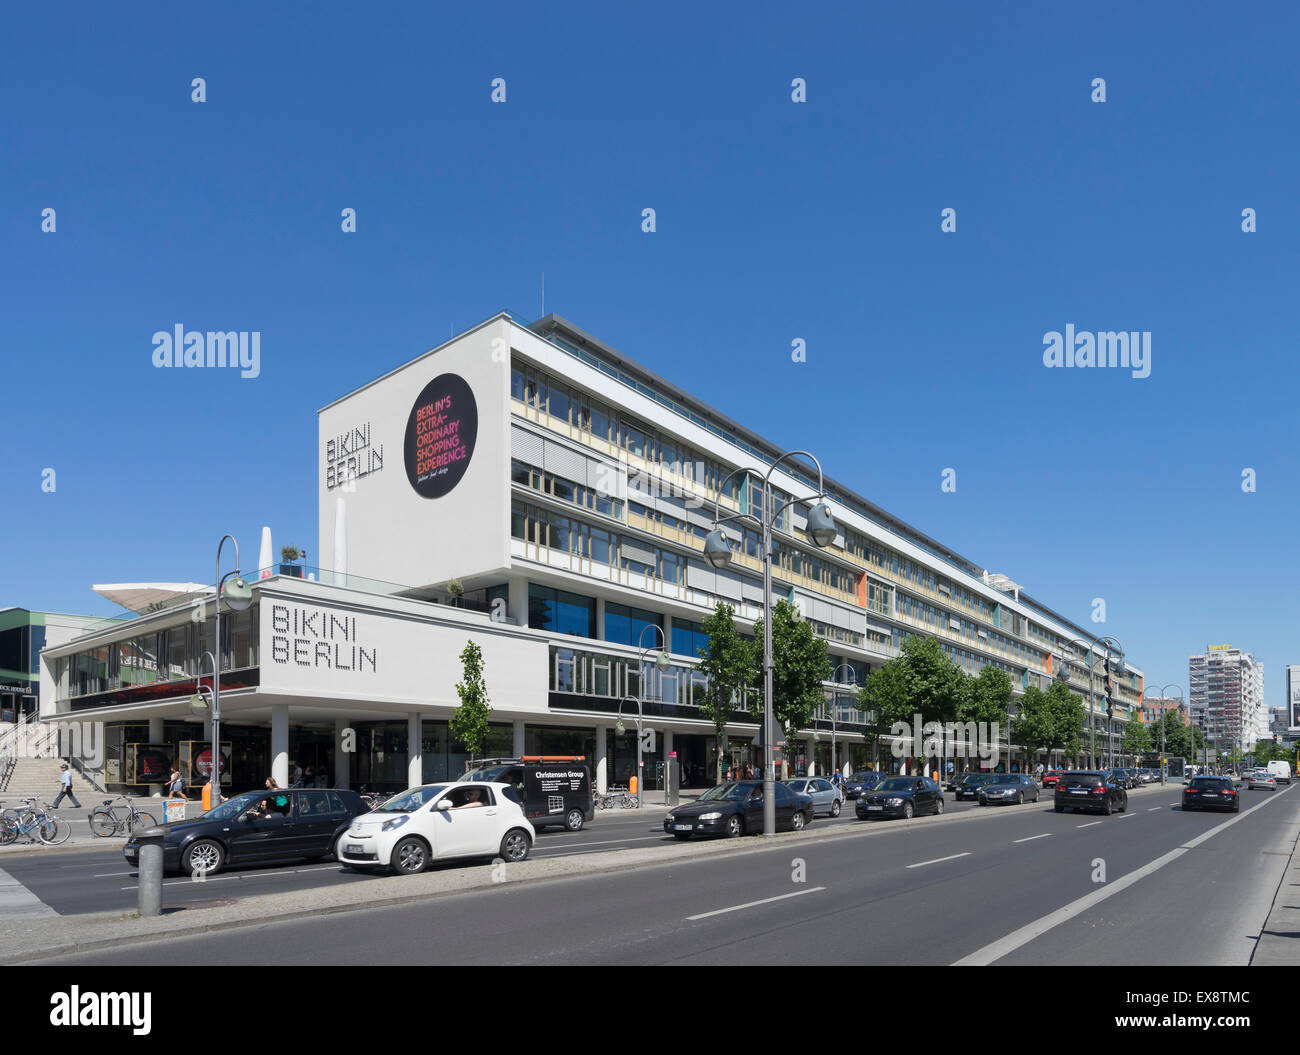 Mall Of Berlin Stock Photos & Mall Of Berlin Stock Images - Alamy